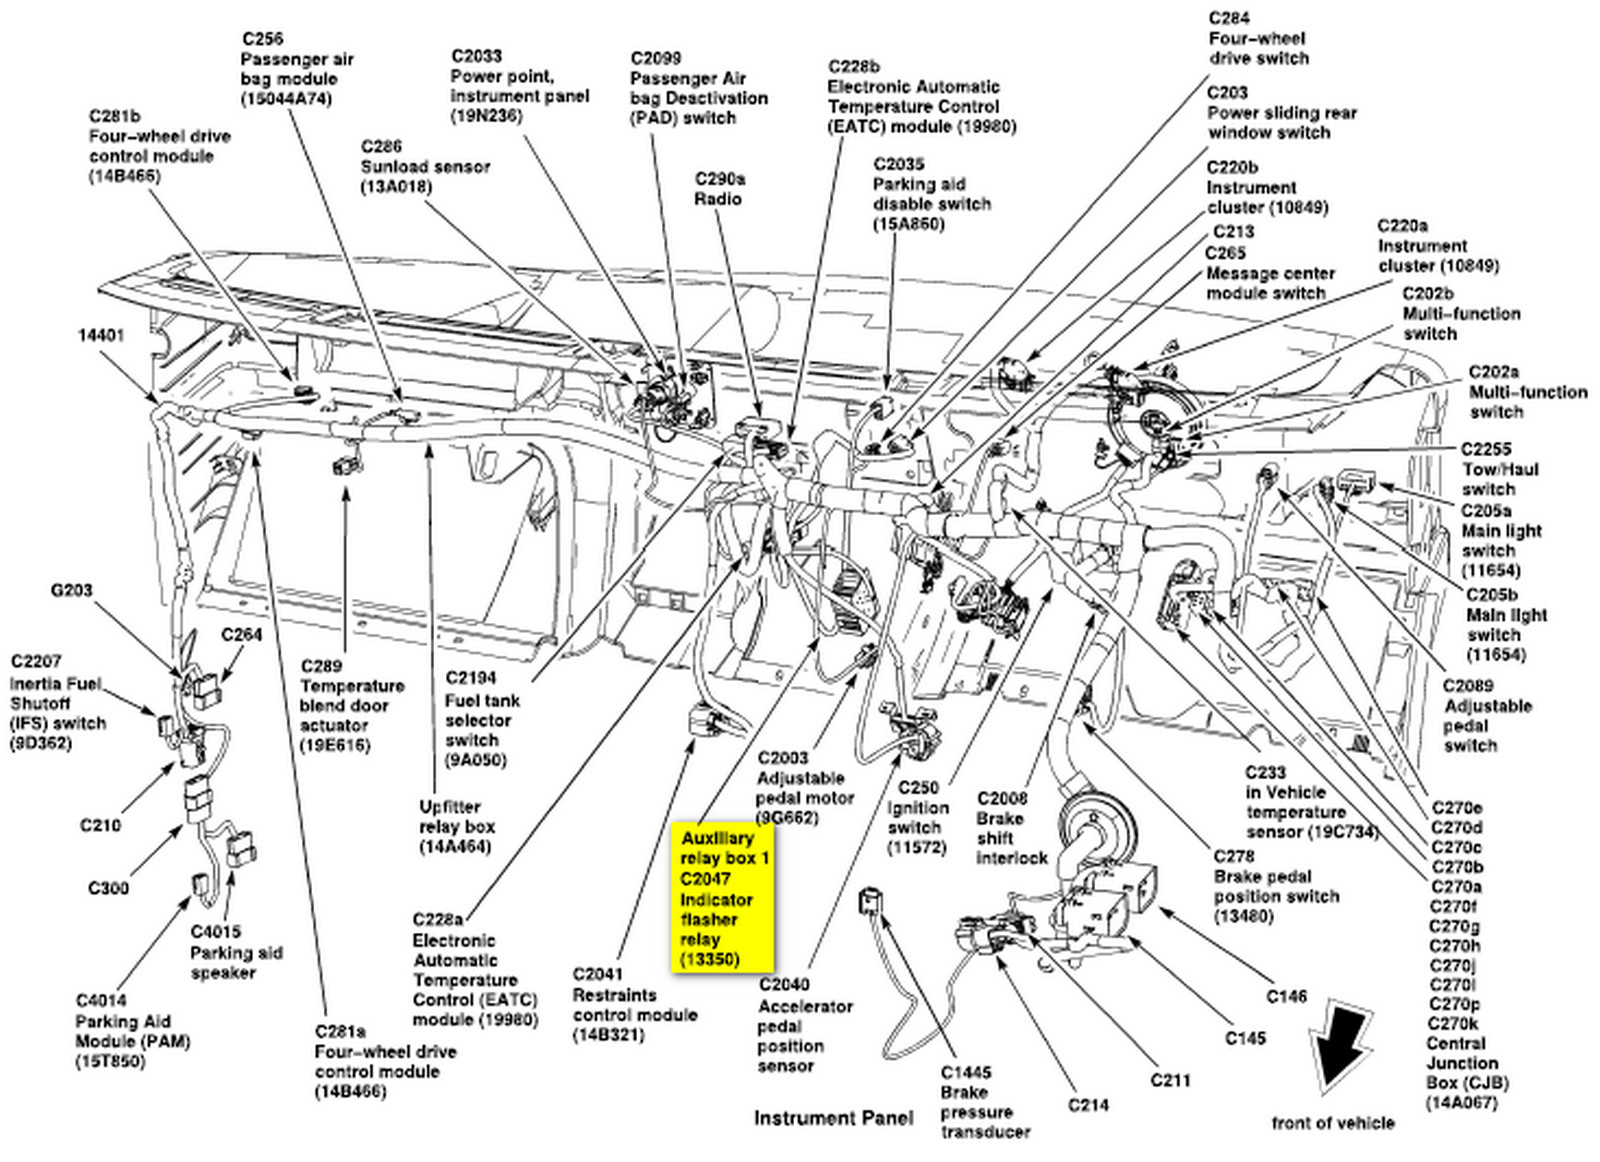 2005 tundra lights wiring diagram pdf with 2004 Ford E 250 Van Fuse Box Diagram on 683353 Wiring Woes 68 Coupe additionally 19ae51788188ece449990dbedcab5d2b as well 2014 Silverado Trailer Brake Wiring Diagram furthermore 2004 Ford E 250 Van Fuse Box Diagram likewise .